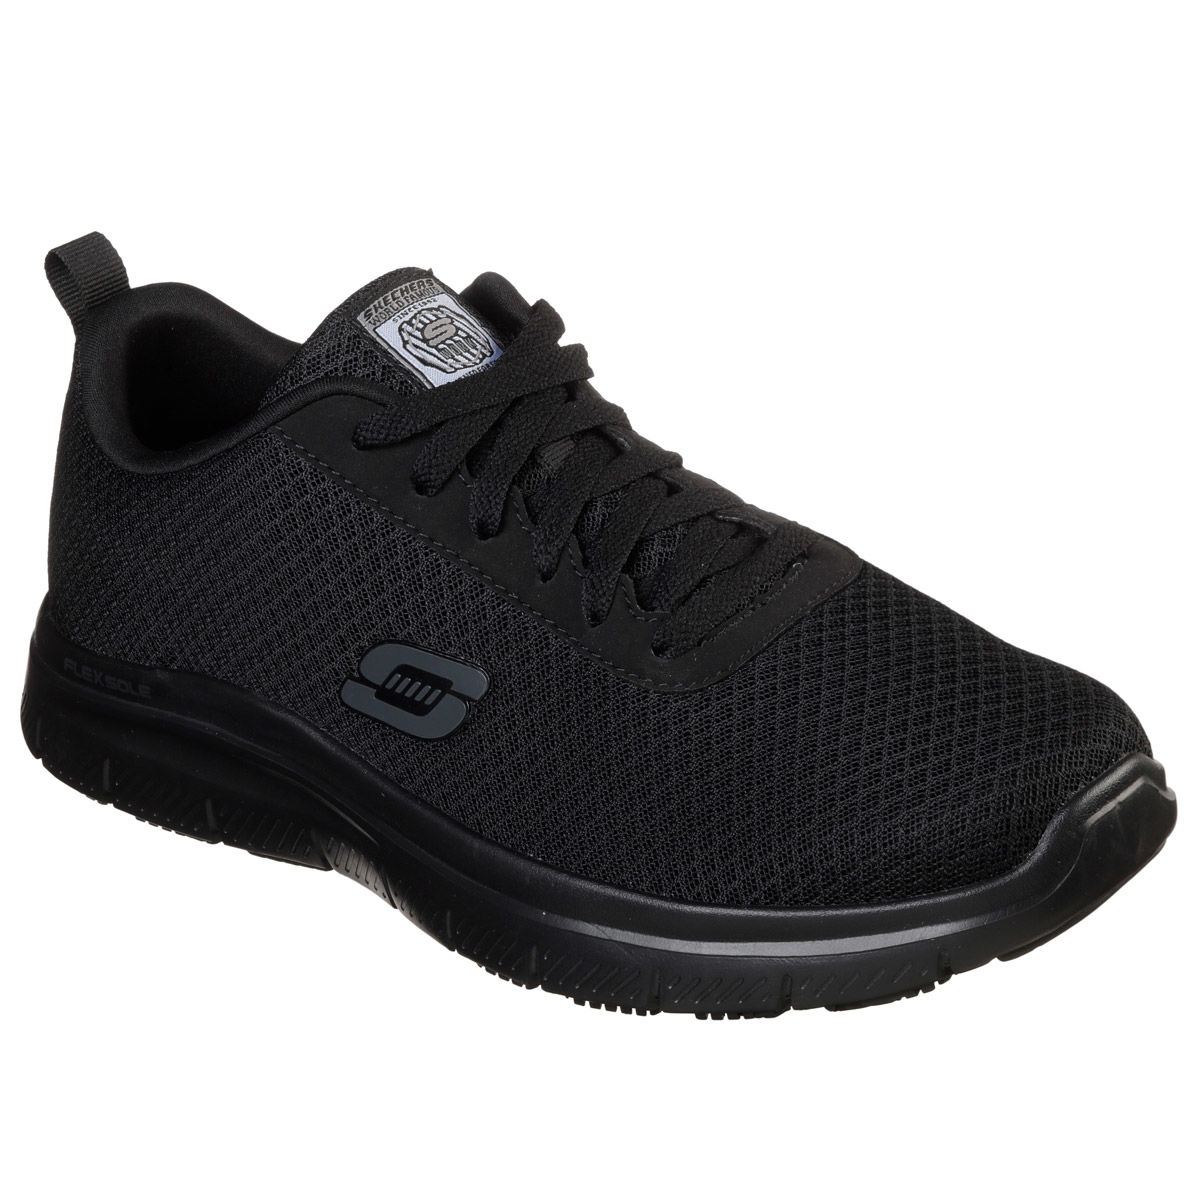 Skechers Bendon Mesh Mens Work Shoe